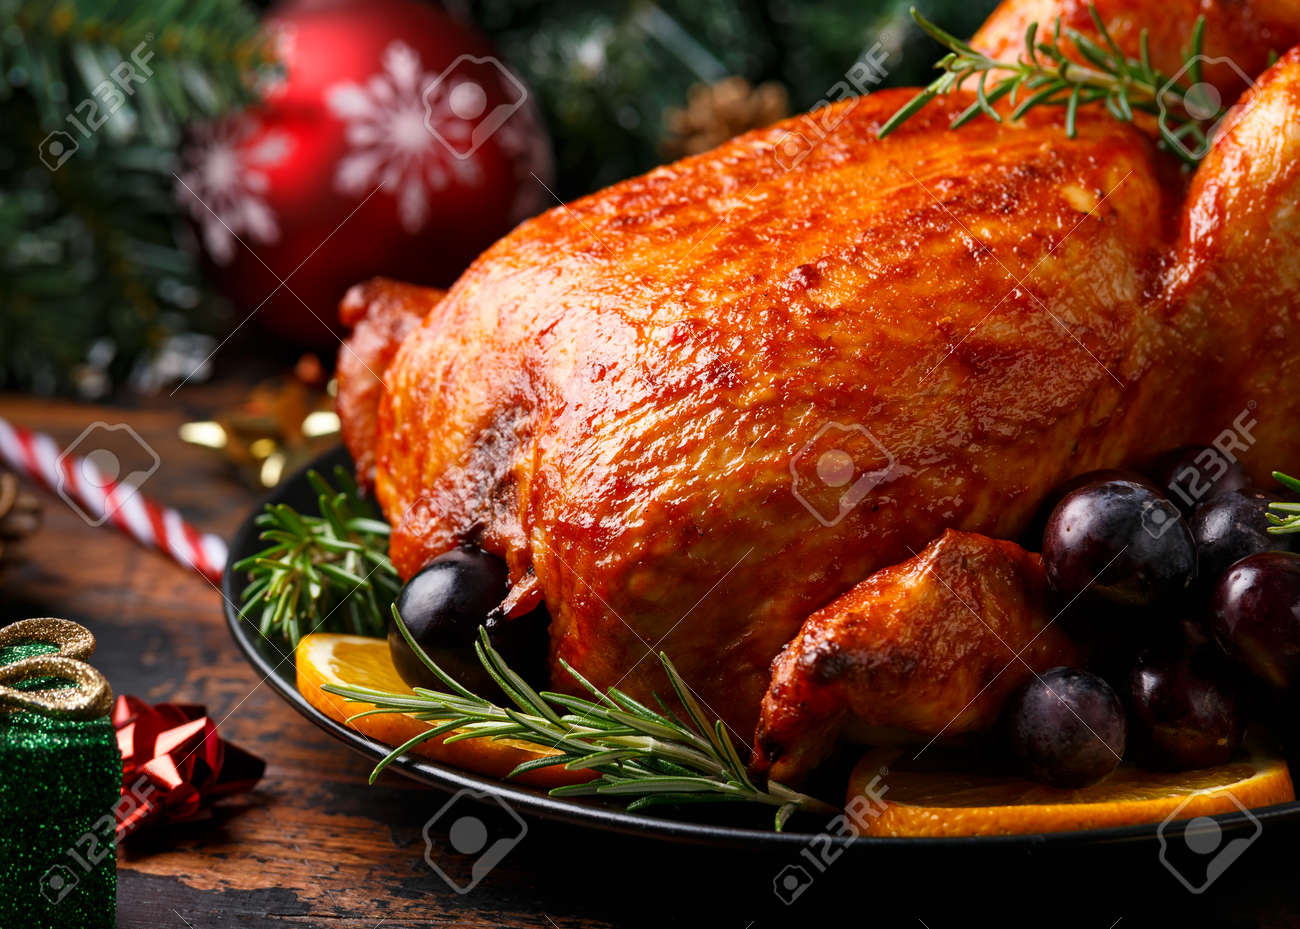 Christmas Chicken, roast in oven with decoration, gifts, green tree branch on wooden rustic table - 158220625